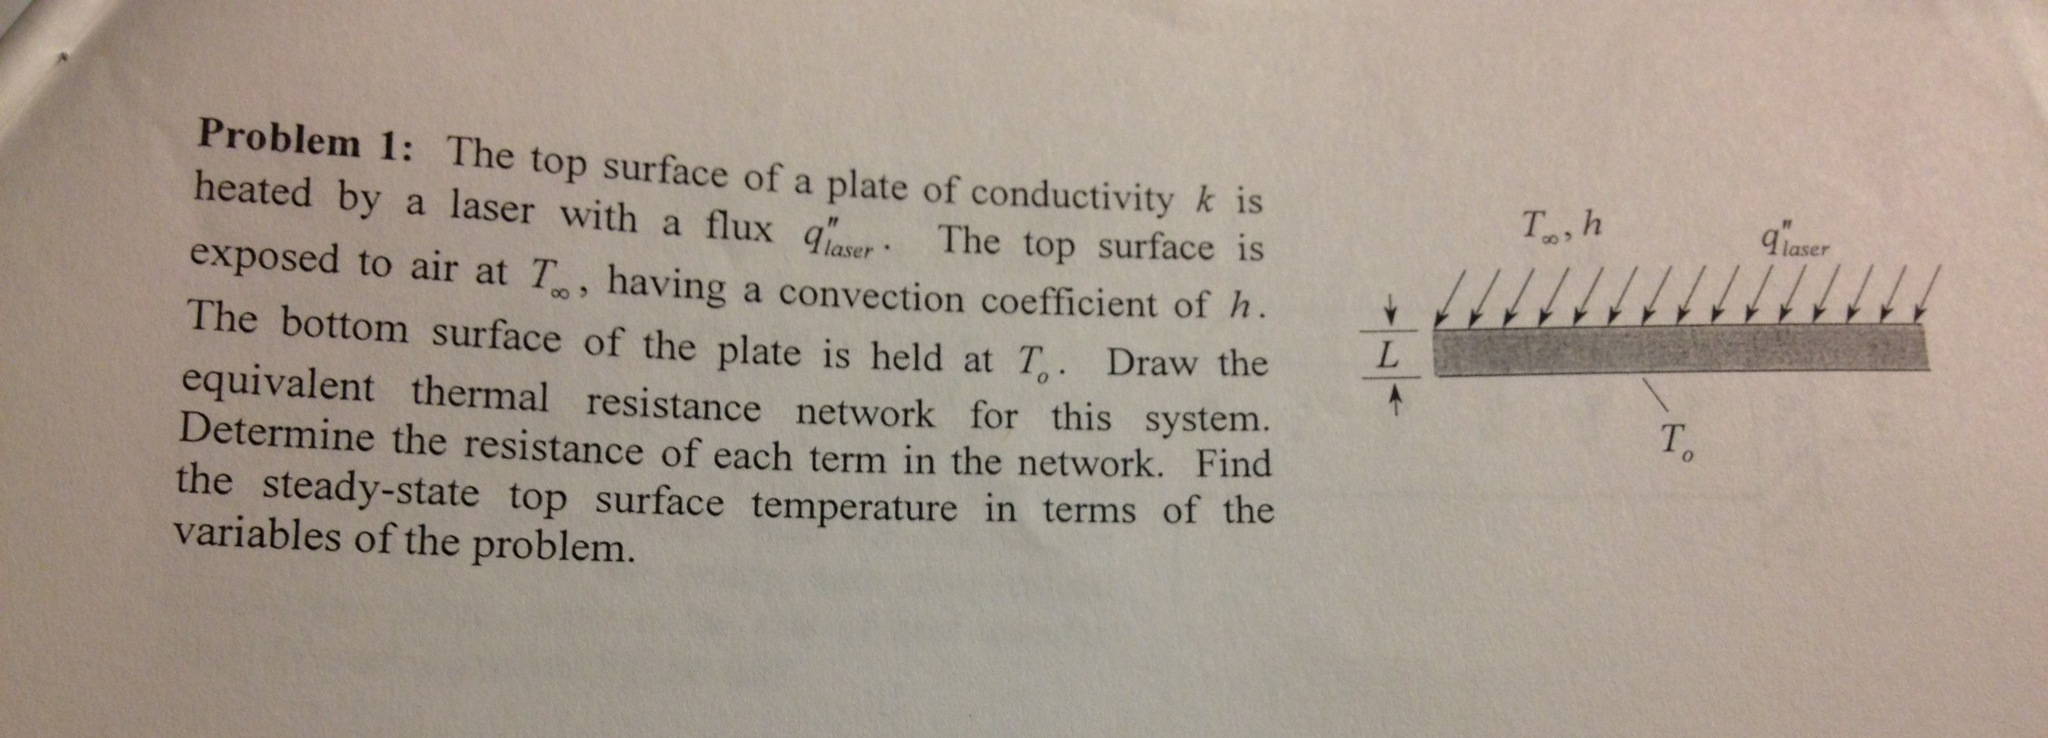 The top surface of a plate of conductivity k is he